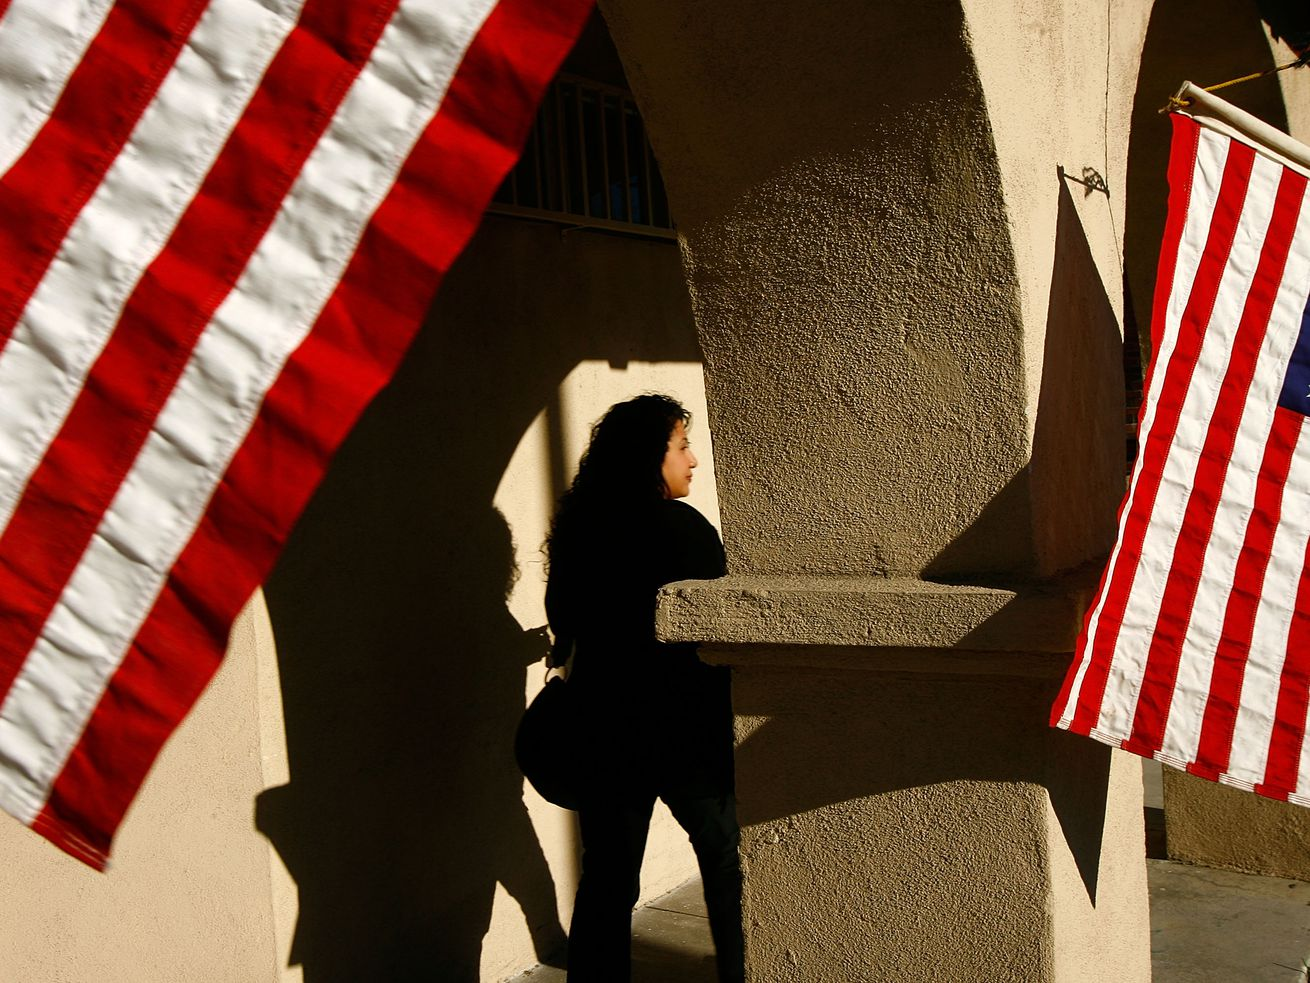 Voters go to the polls for primary elections in the predominantly Latino neighborhood of Boyle Heights on February 5, 2008, in Los Angeles, California.